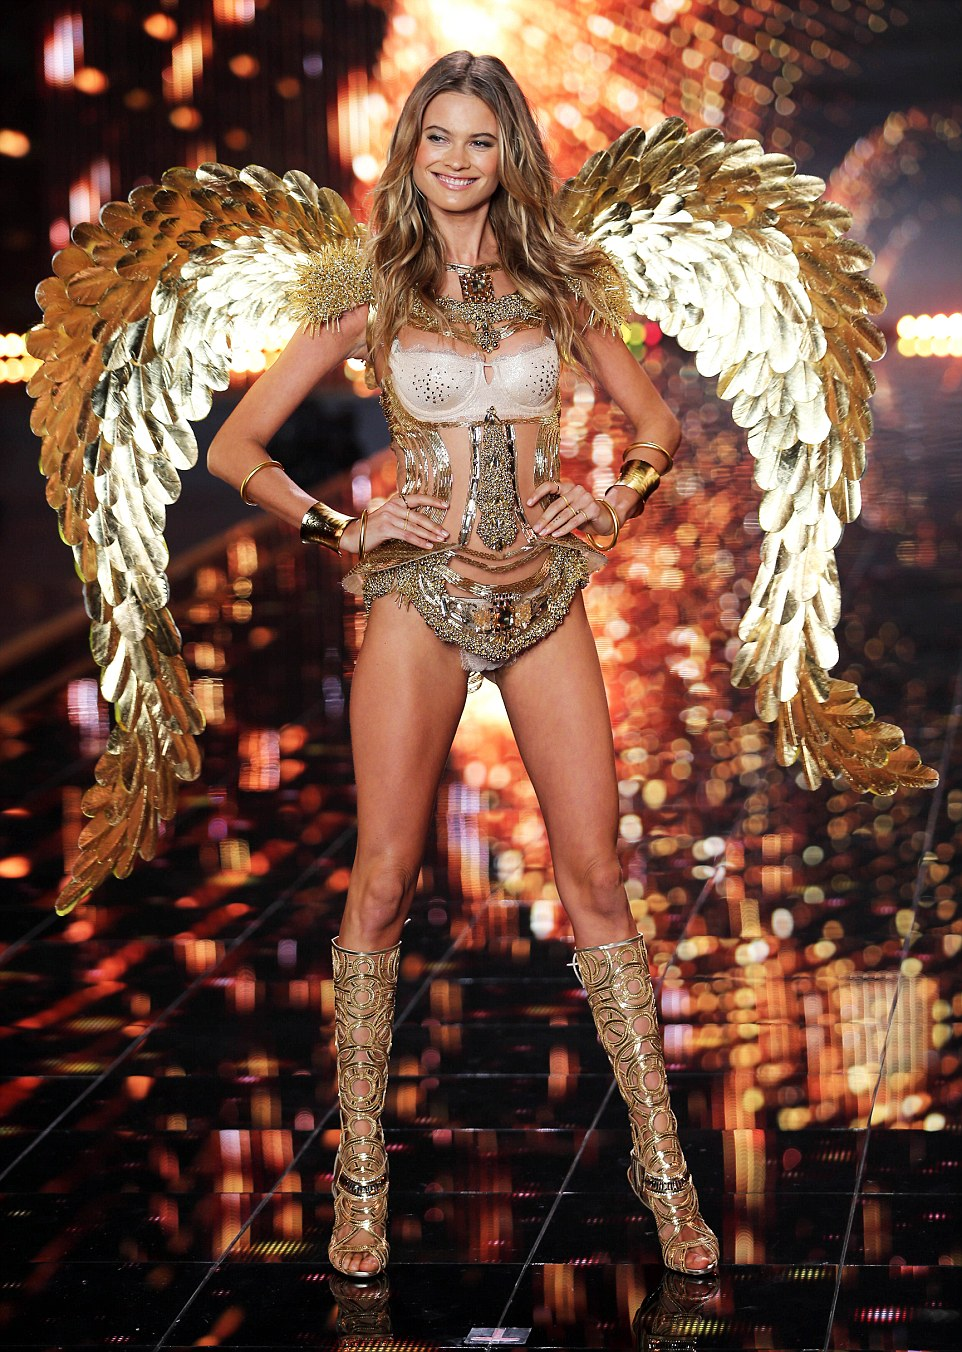 True beauty: Behati Prinsloo beamed as she got to the end of the runway during her segment